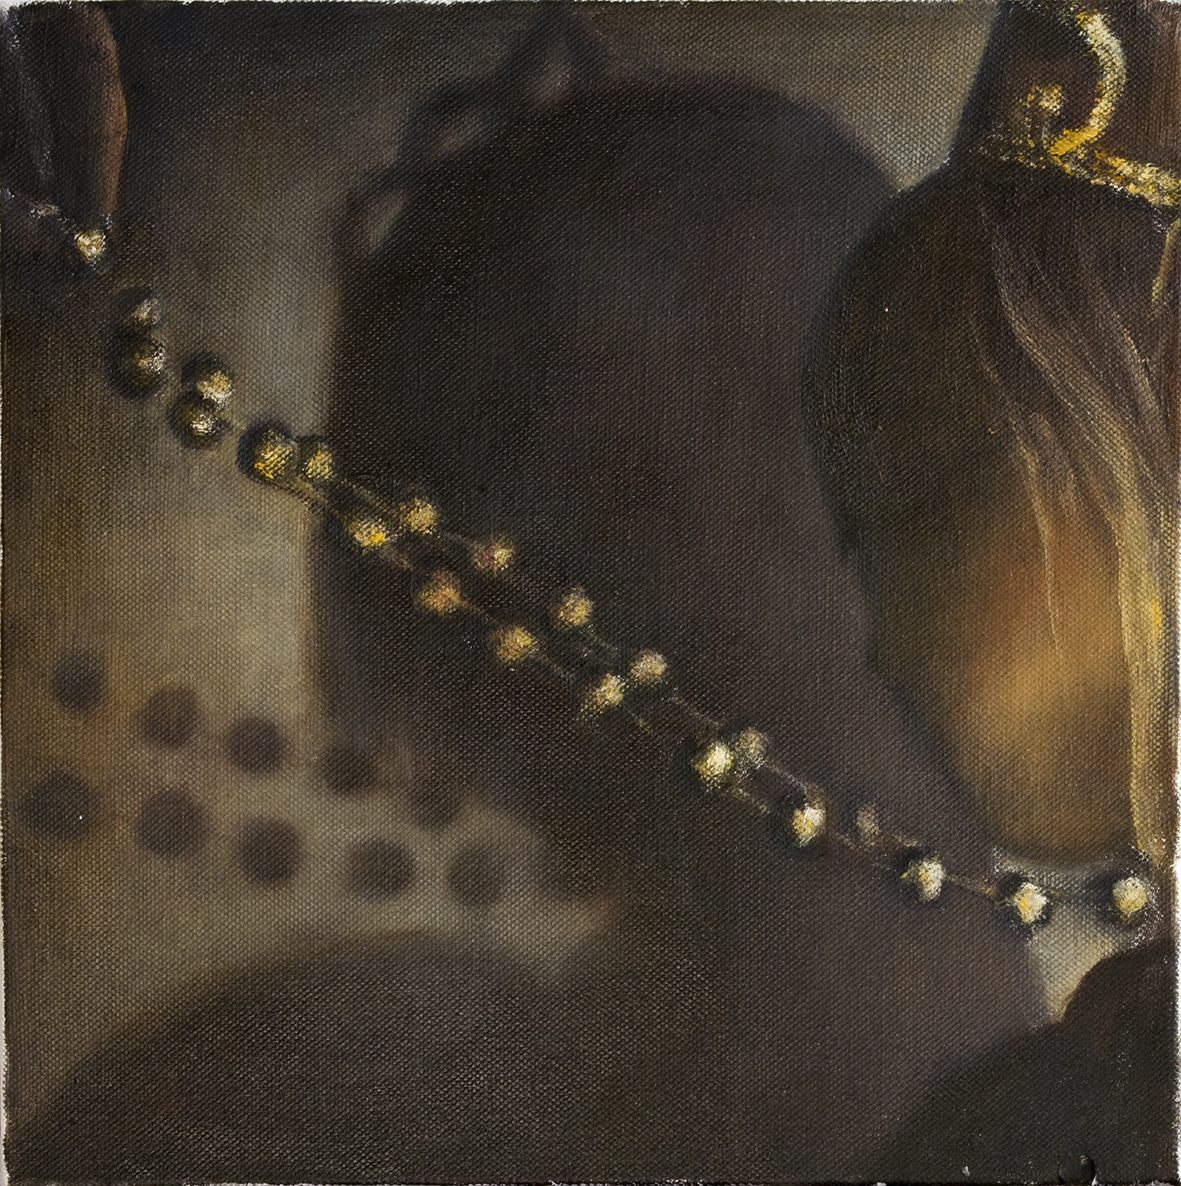 Girl with necklace  Oil on canvas 30x30 cm 2006–07